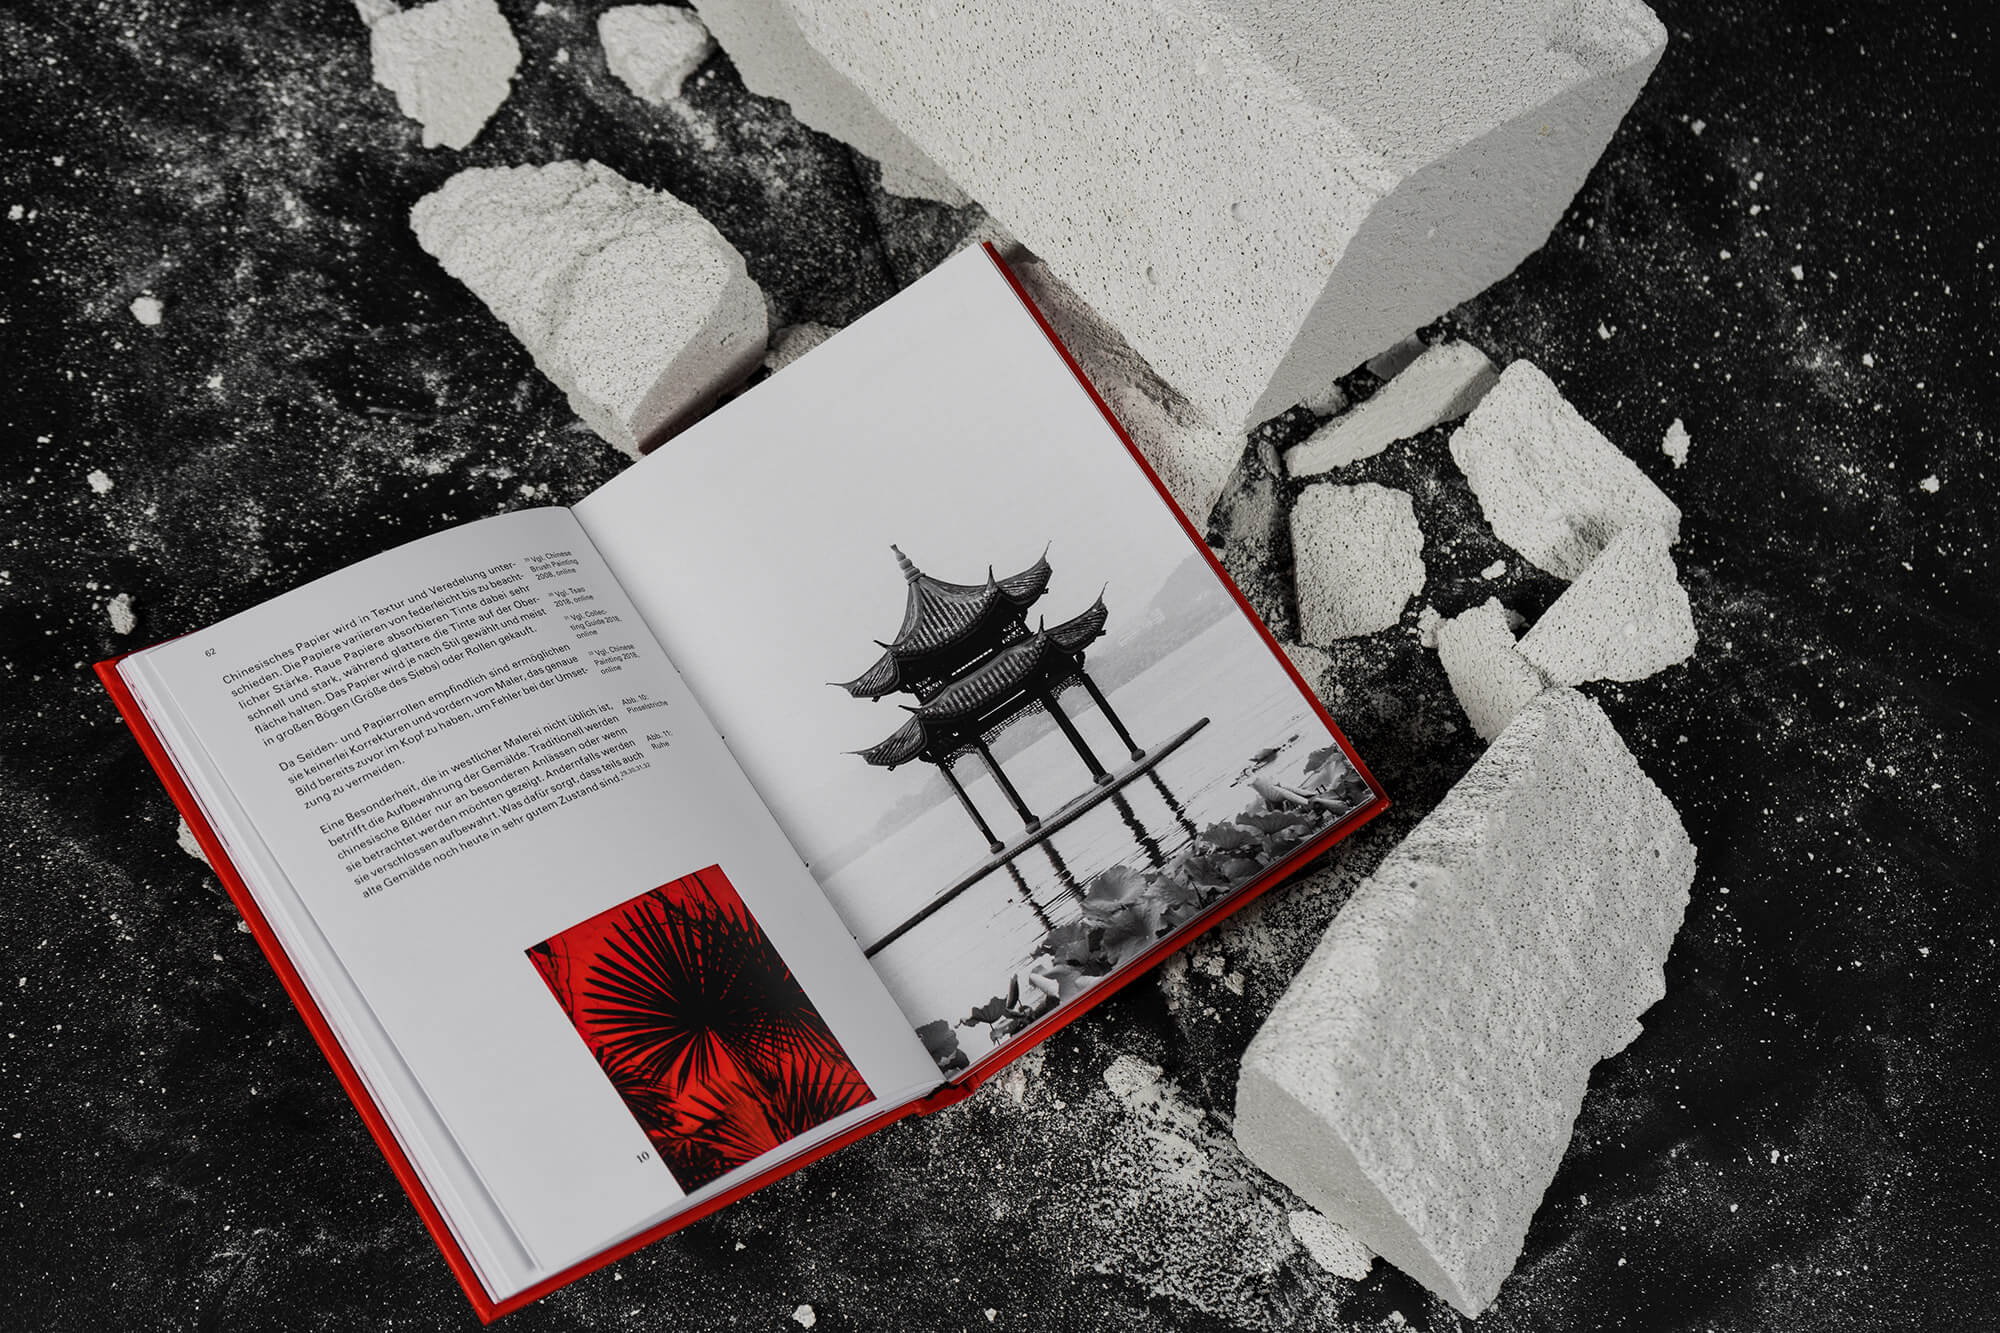 c-leban_views-of-china-book-7